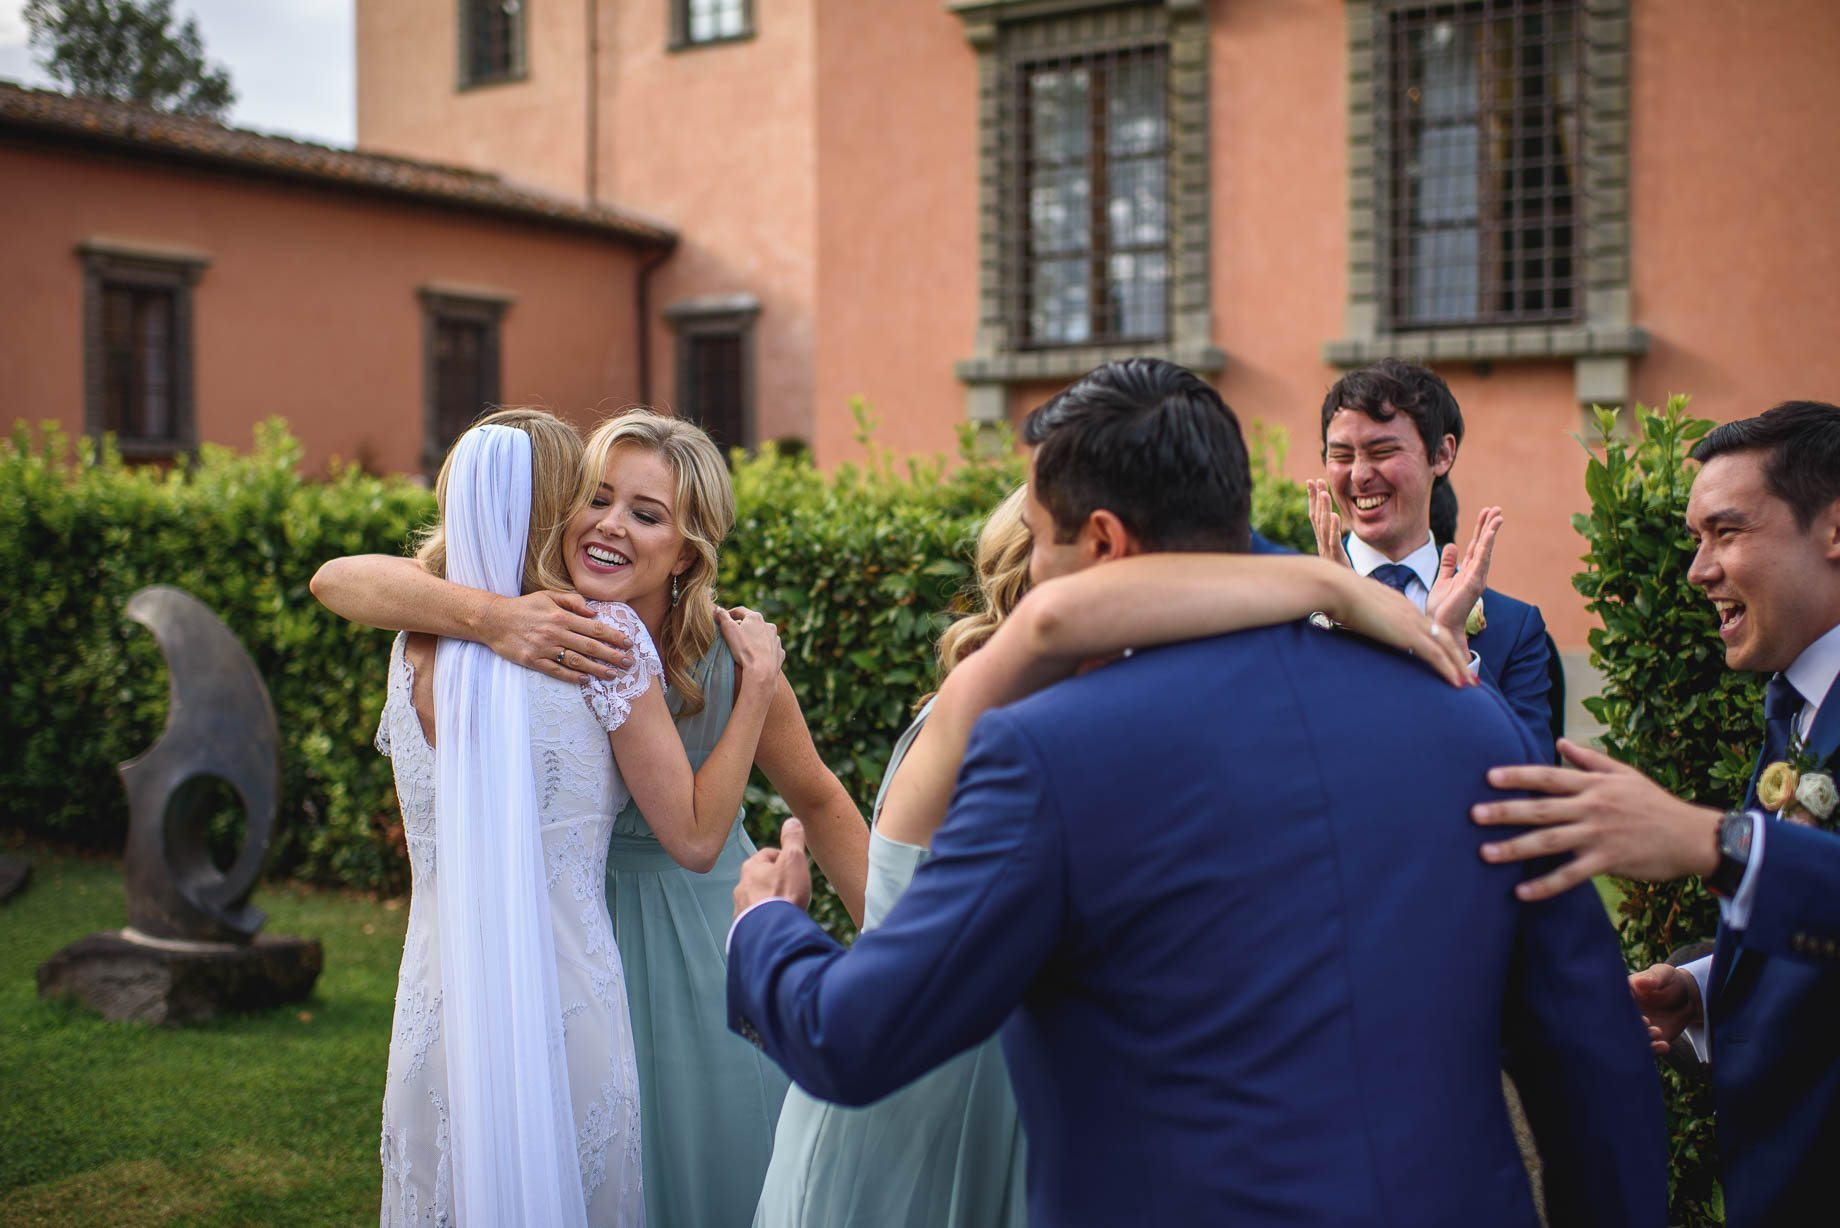 Tuscany wedding photography - Roisin and Moubin - Guy Collier Photography (119 of 251)